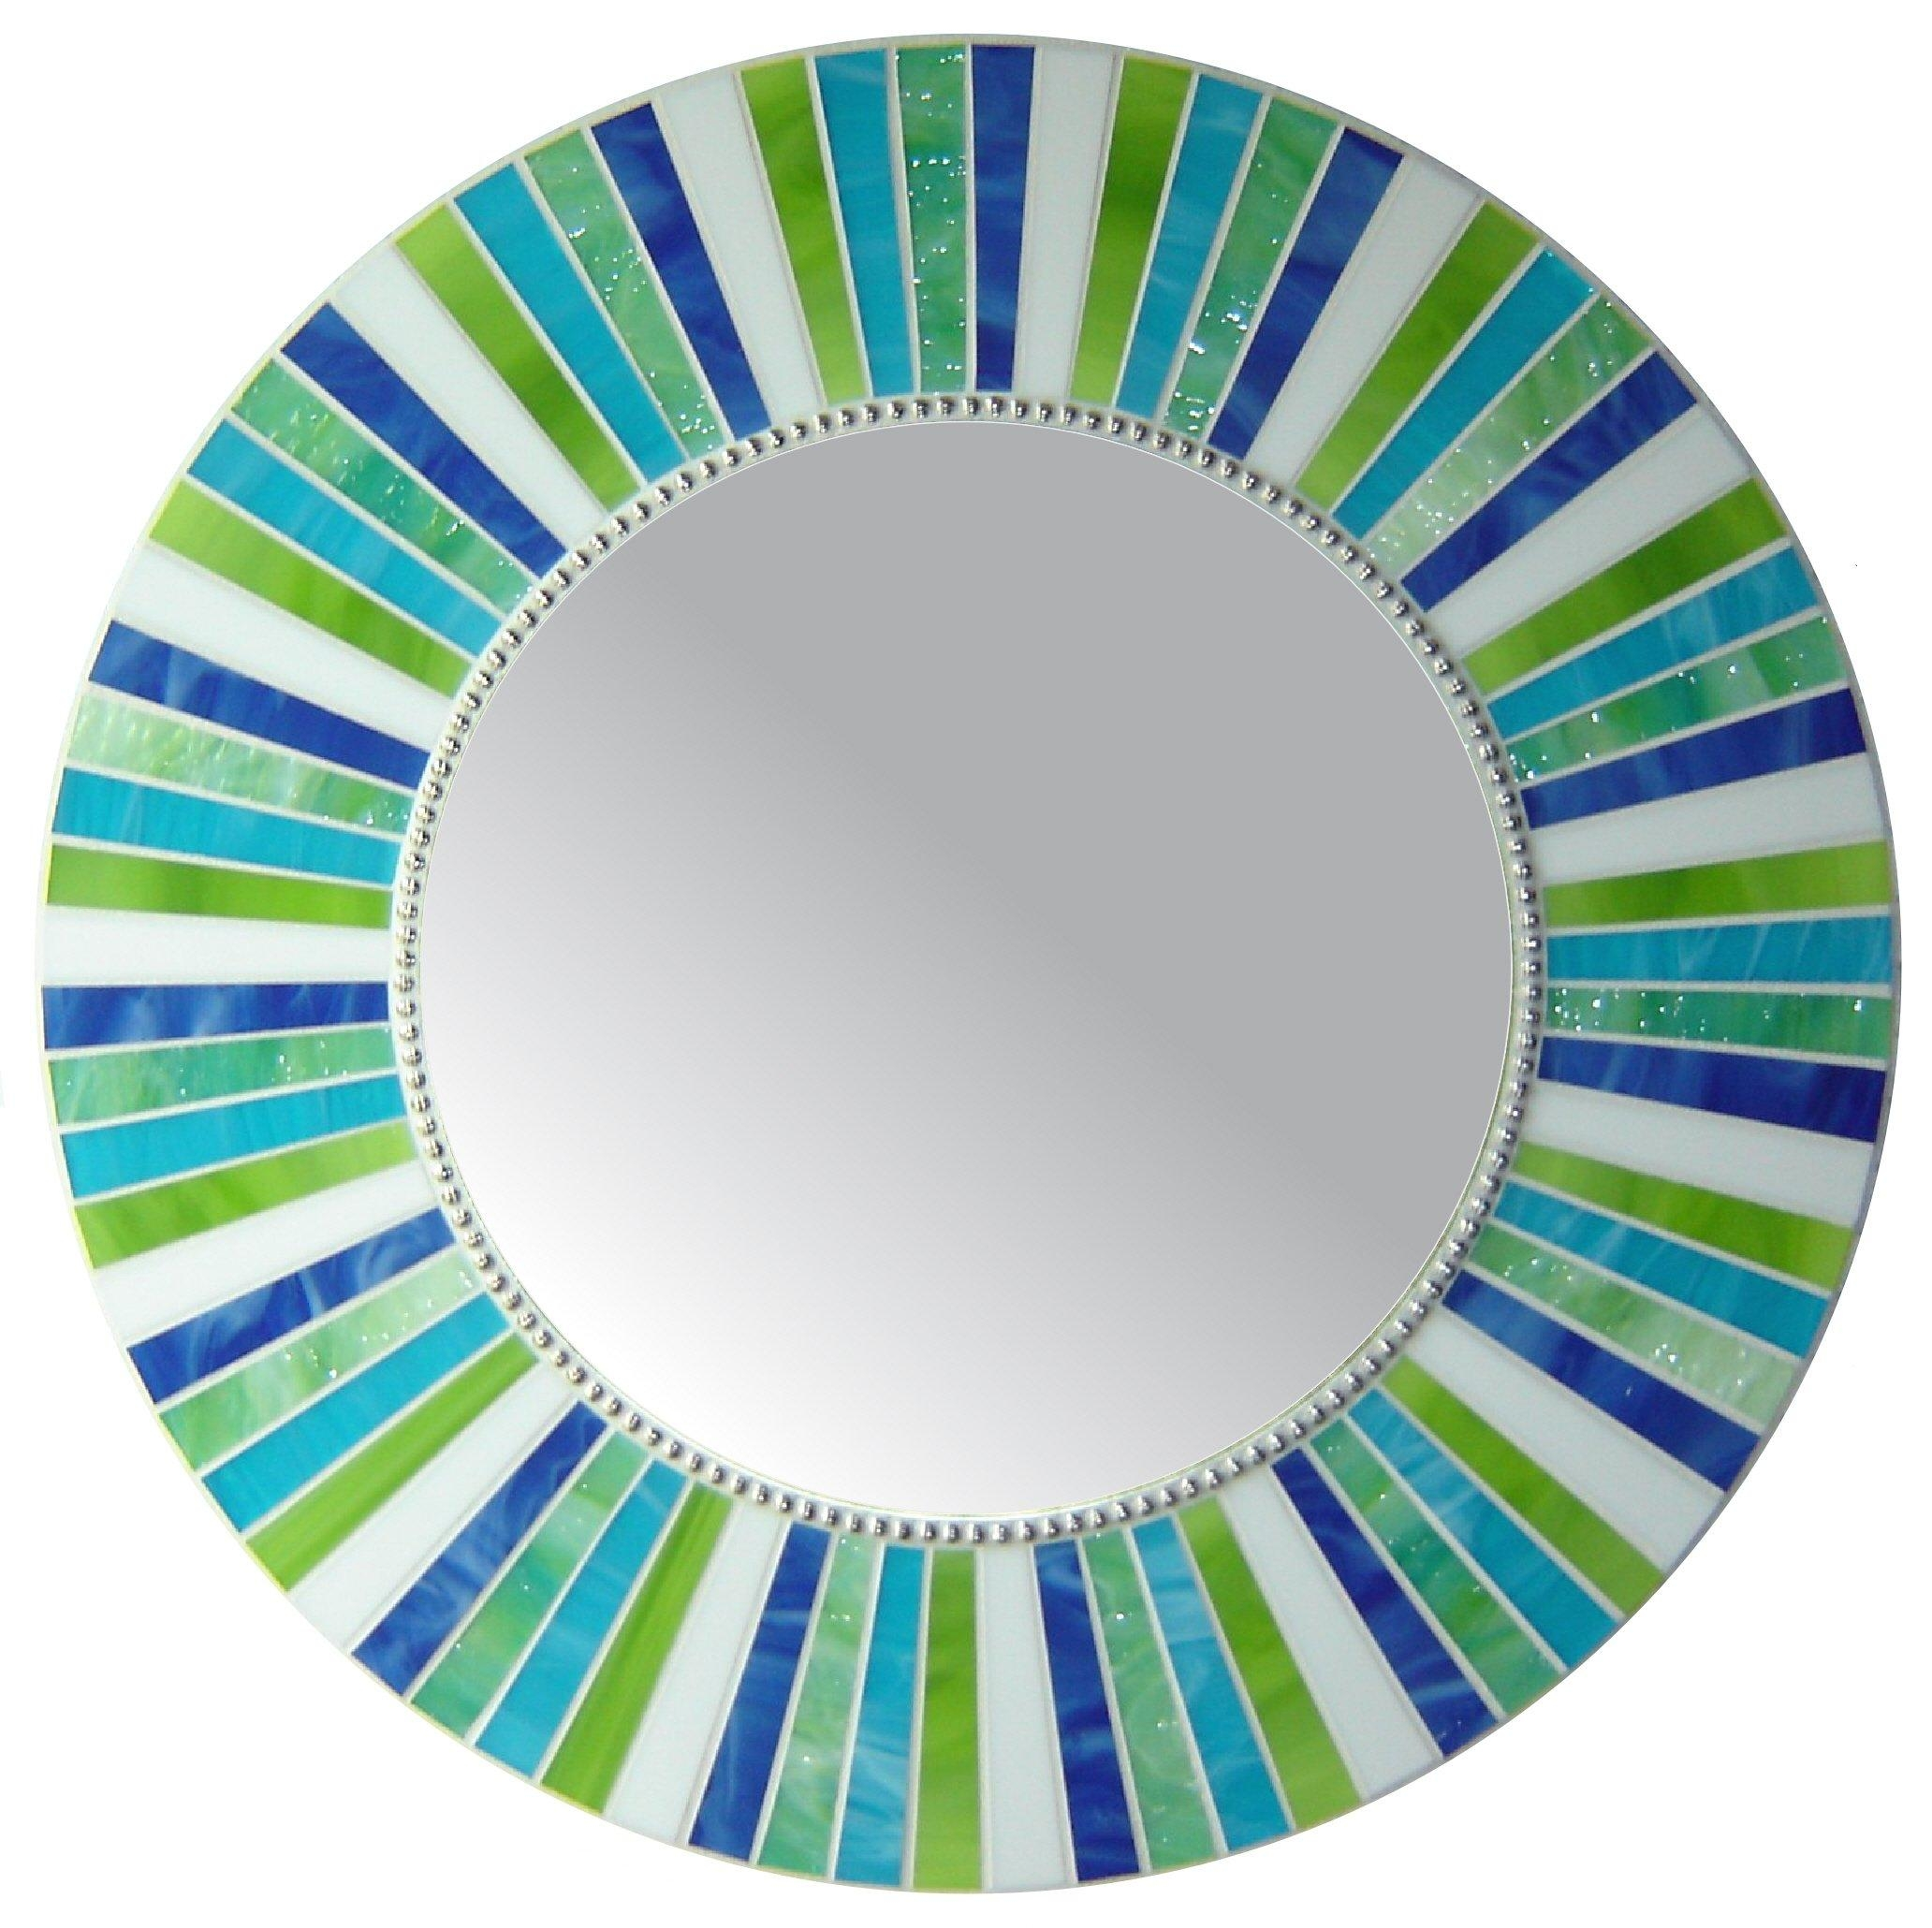 Signature Collection—Custom Mosaic Mirrors By Opus Mosaics Throughout Round Mosaic Mirrors (Image 18 of 20)